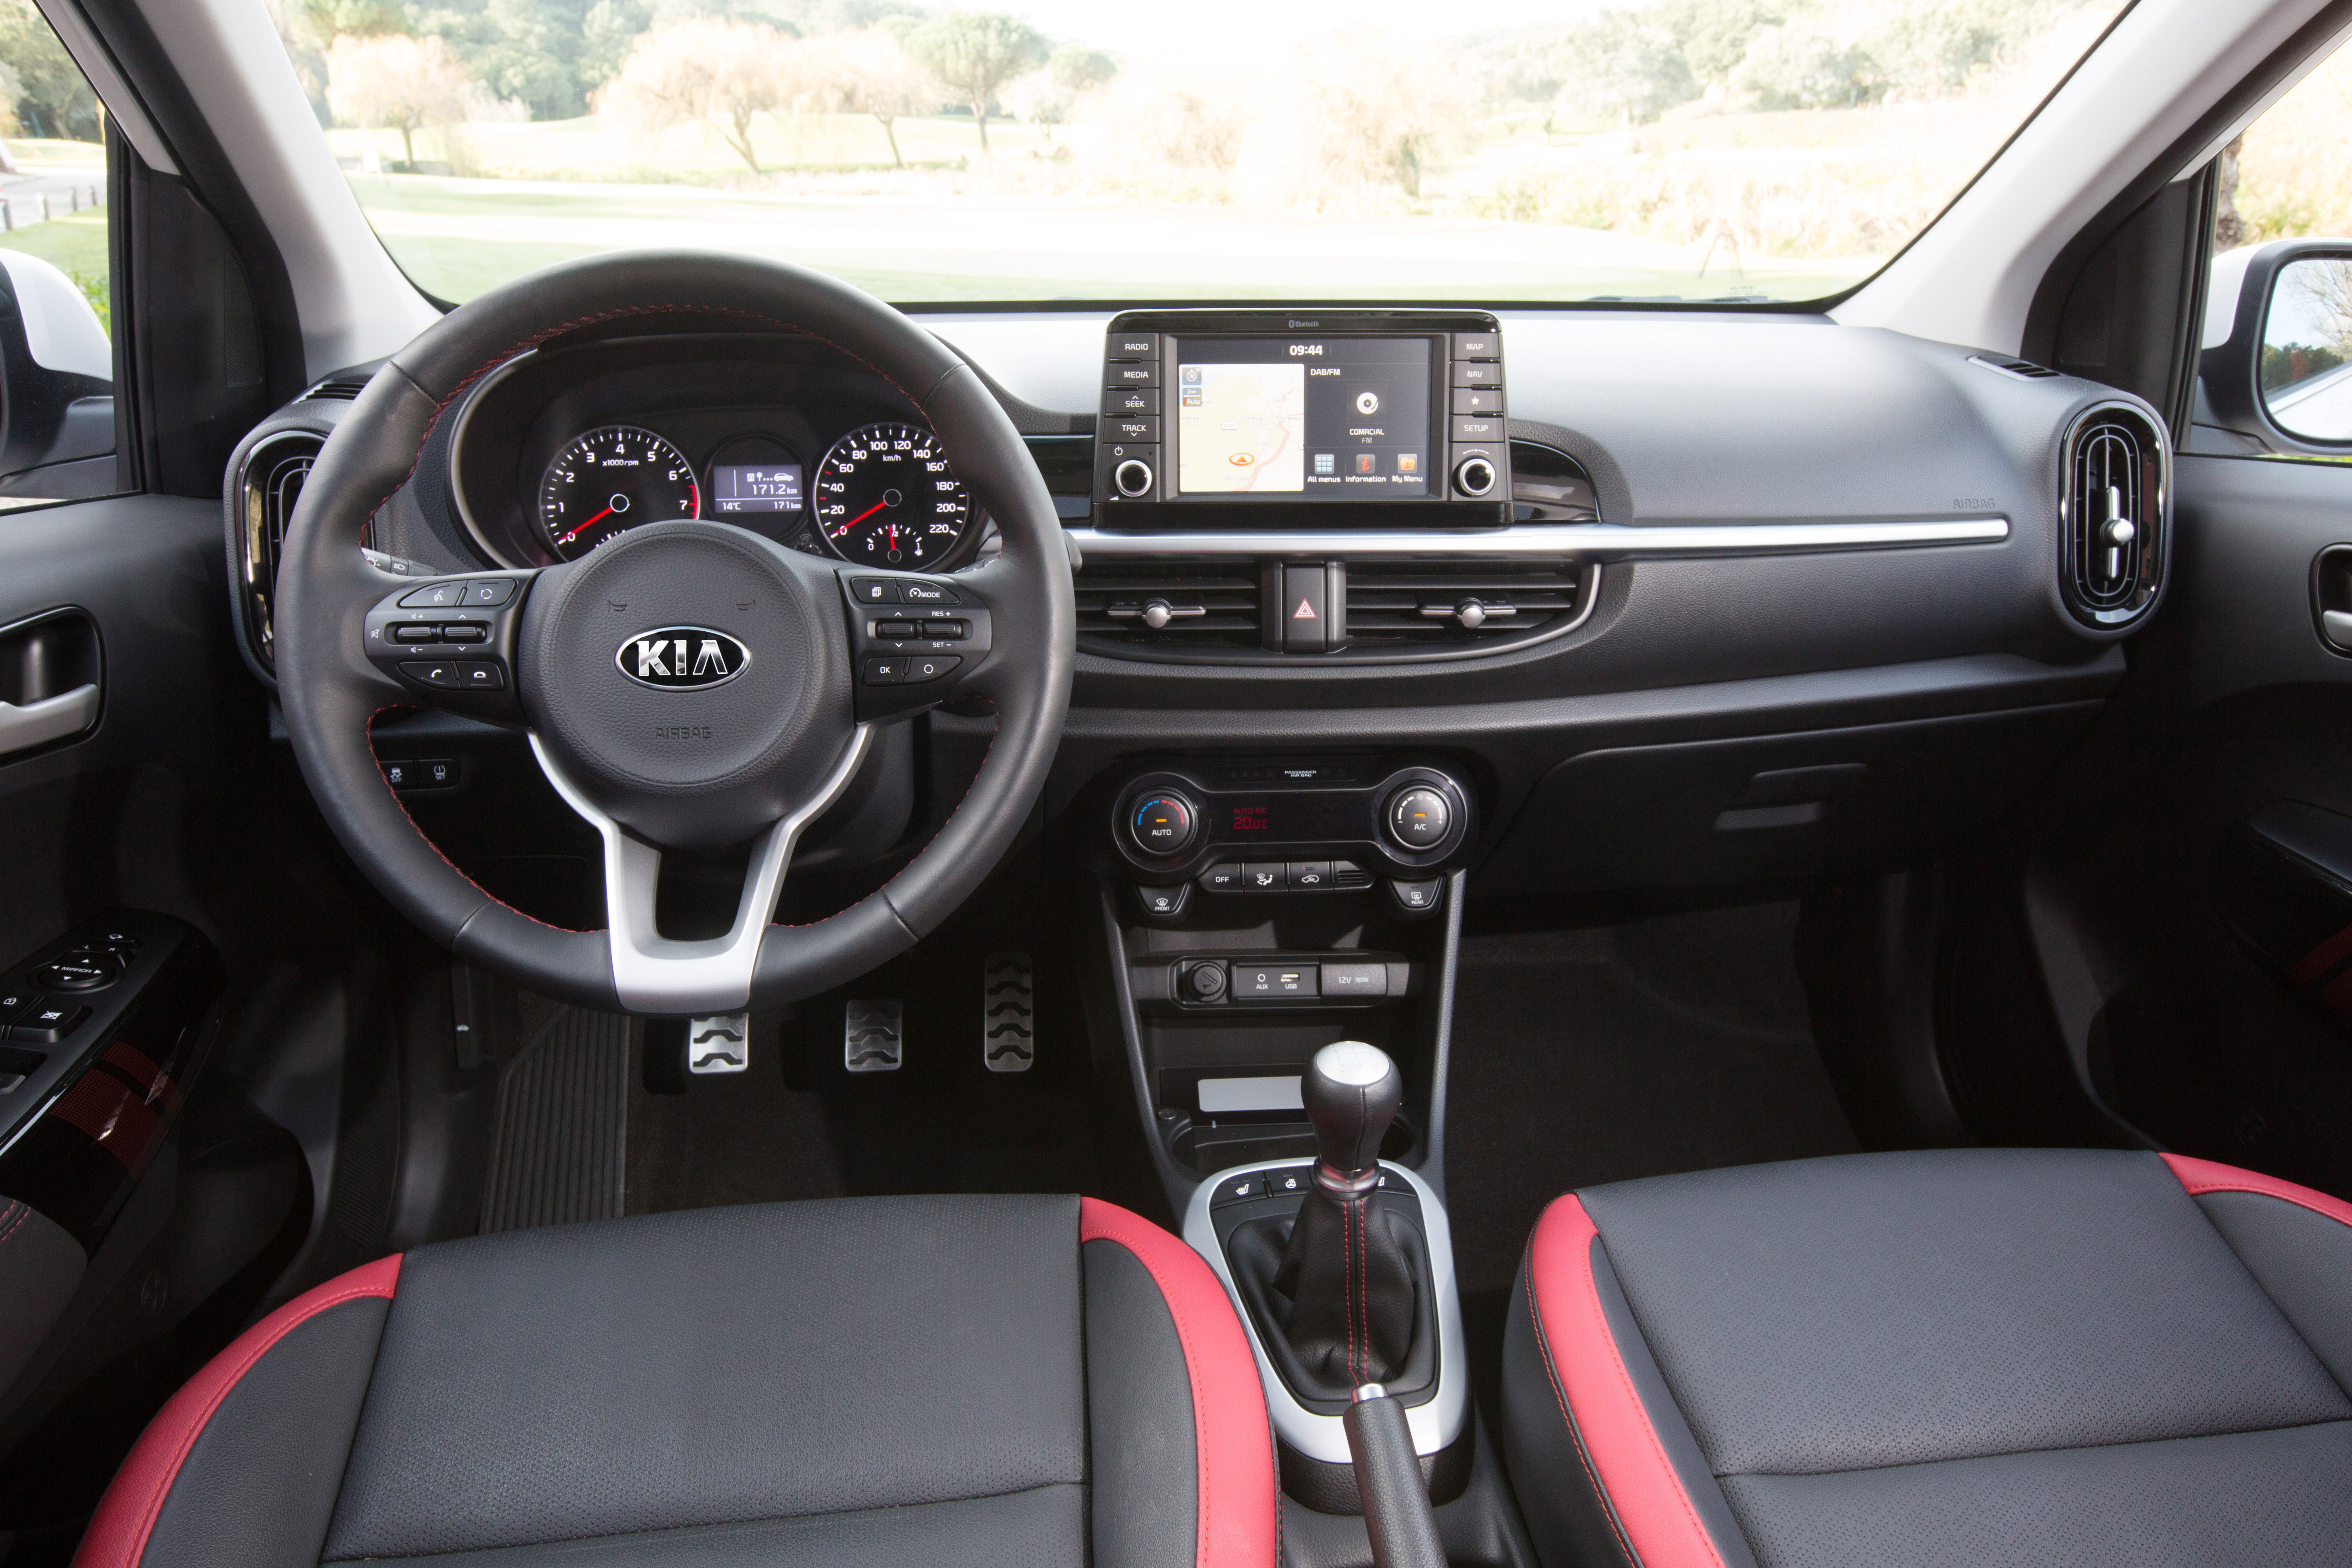 All-new Kia Picanto to be offered with 1.0 litre turbo, manual transmission,